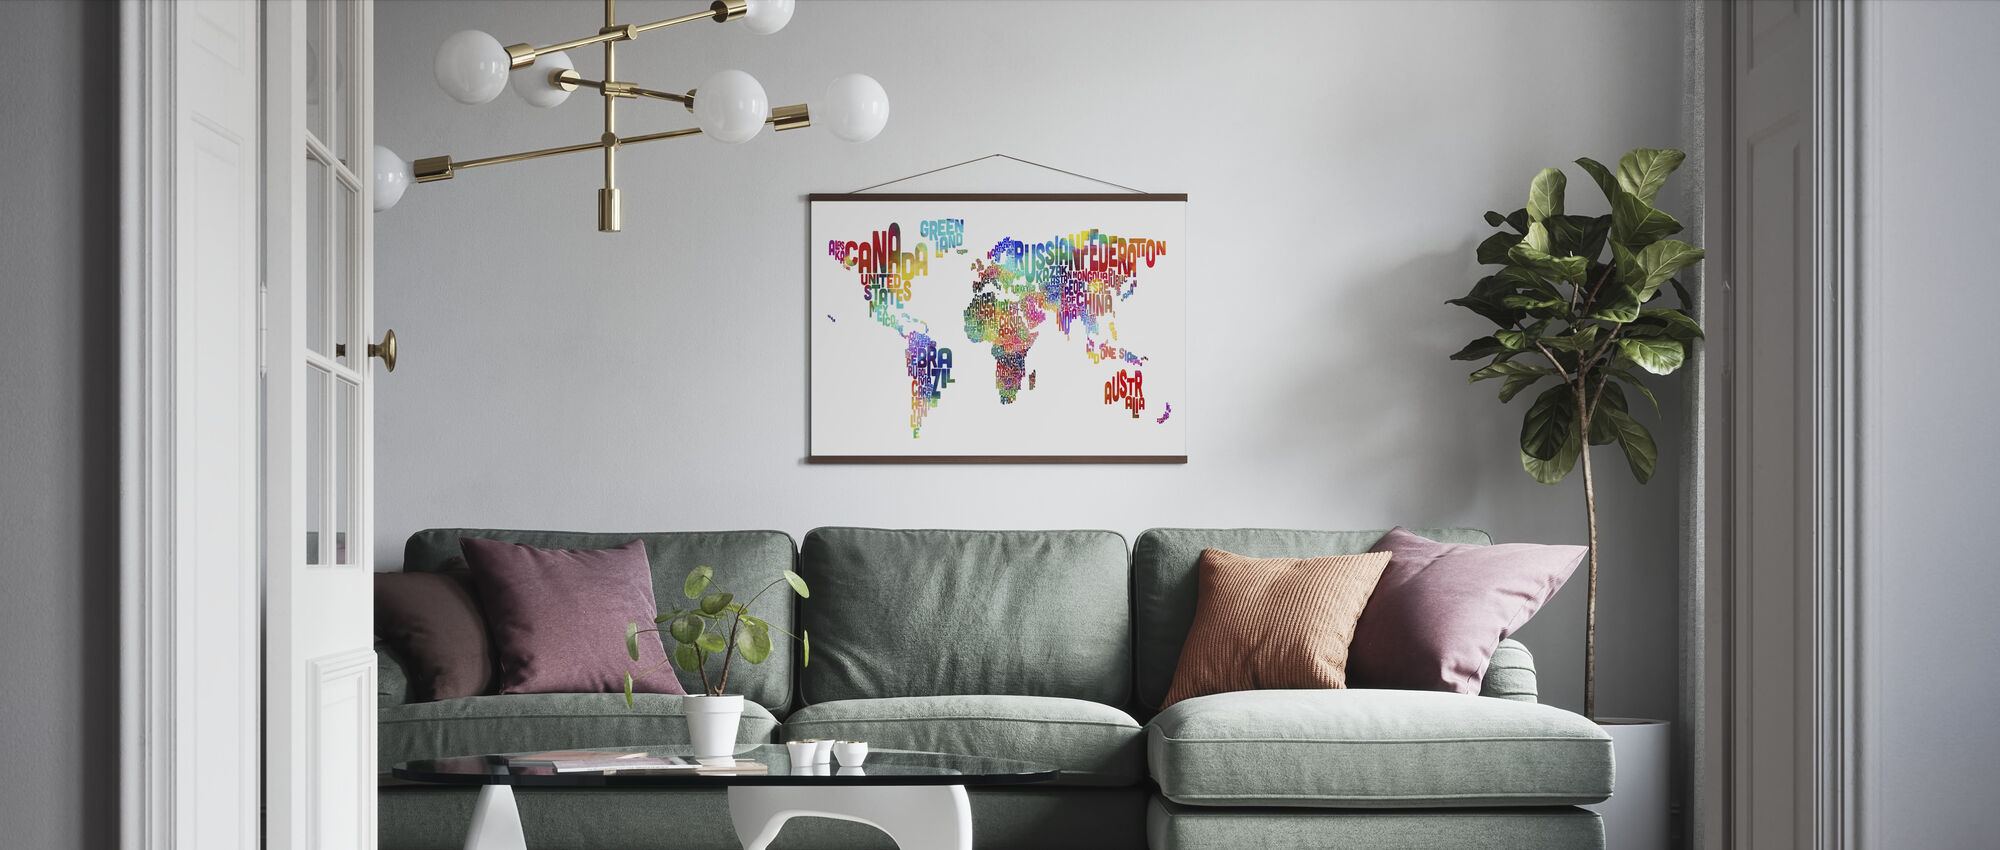 Typographic Text World Map 2 - Poster - Living Room